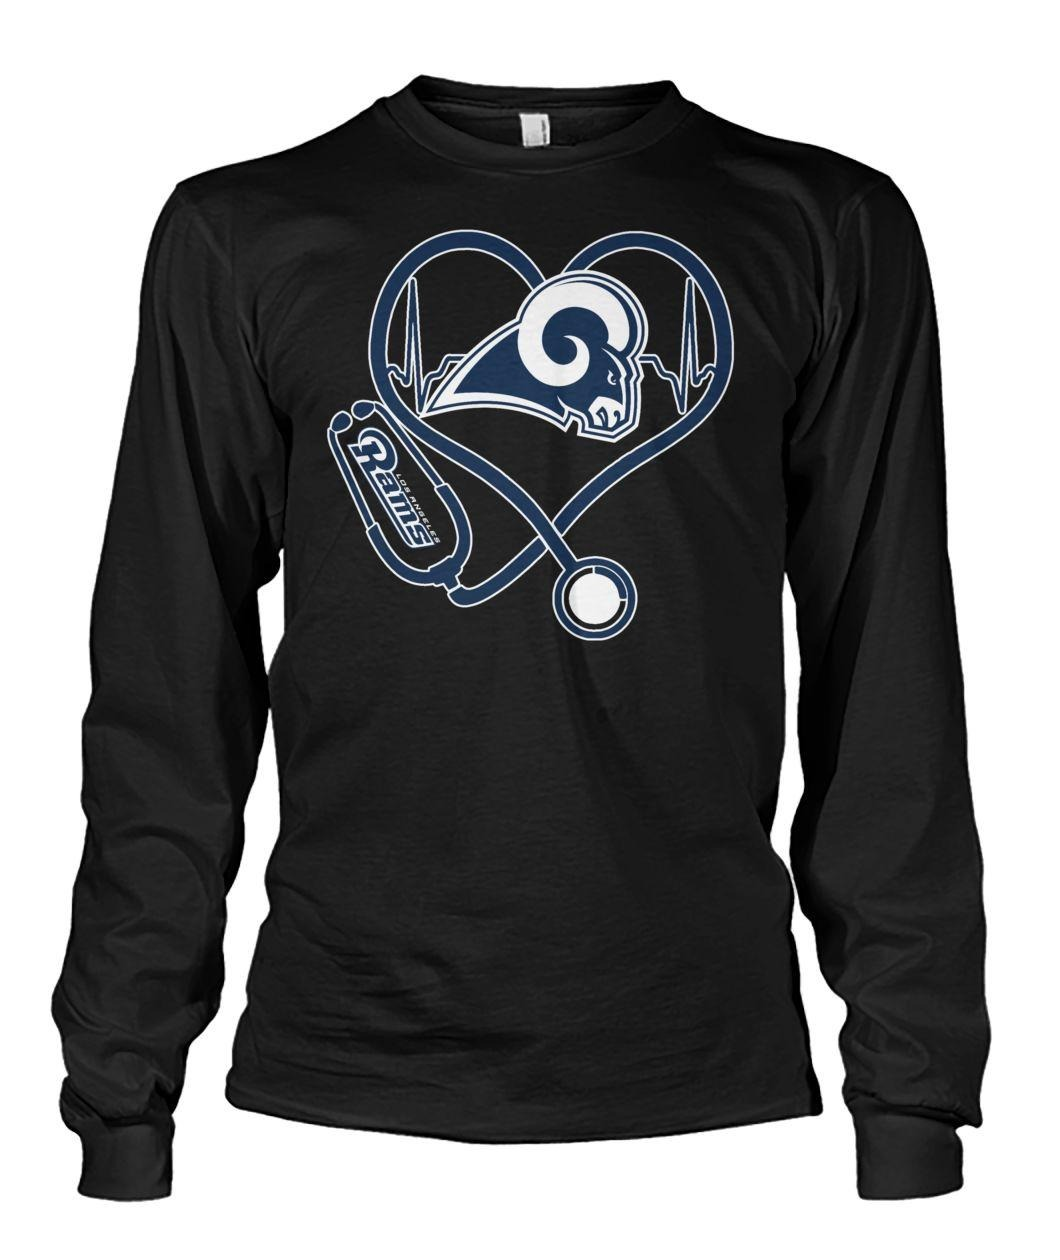 Nurse heartbeat Los Angeles Rams Longsleeve Tee